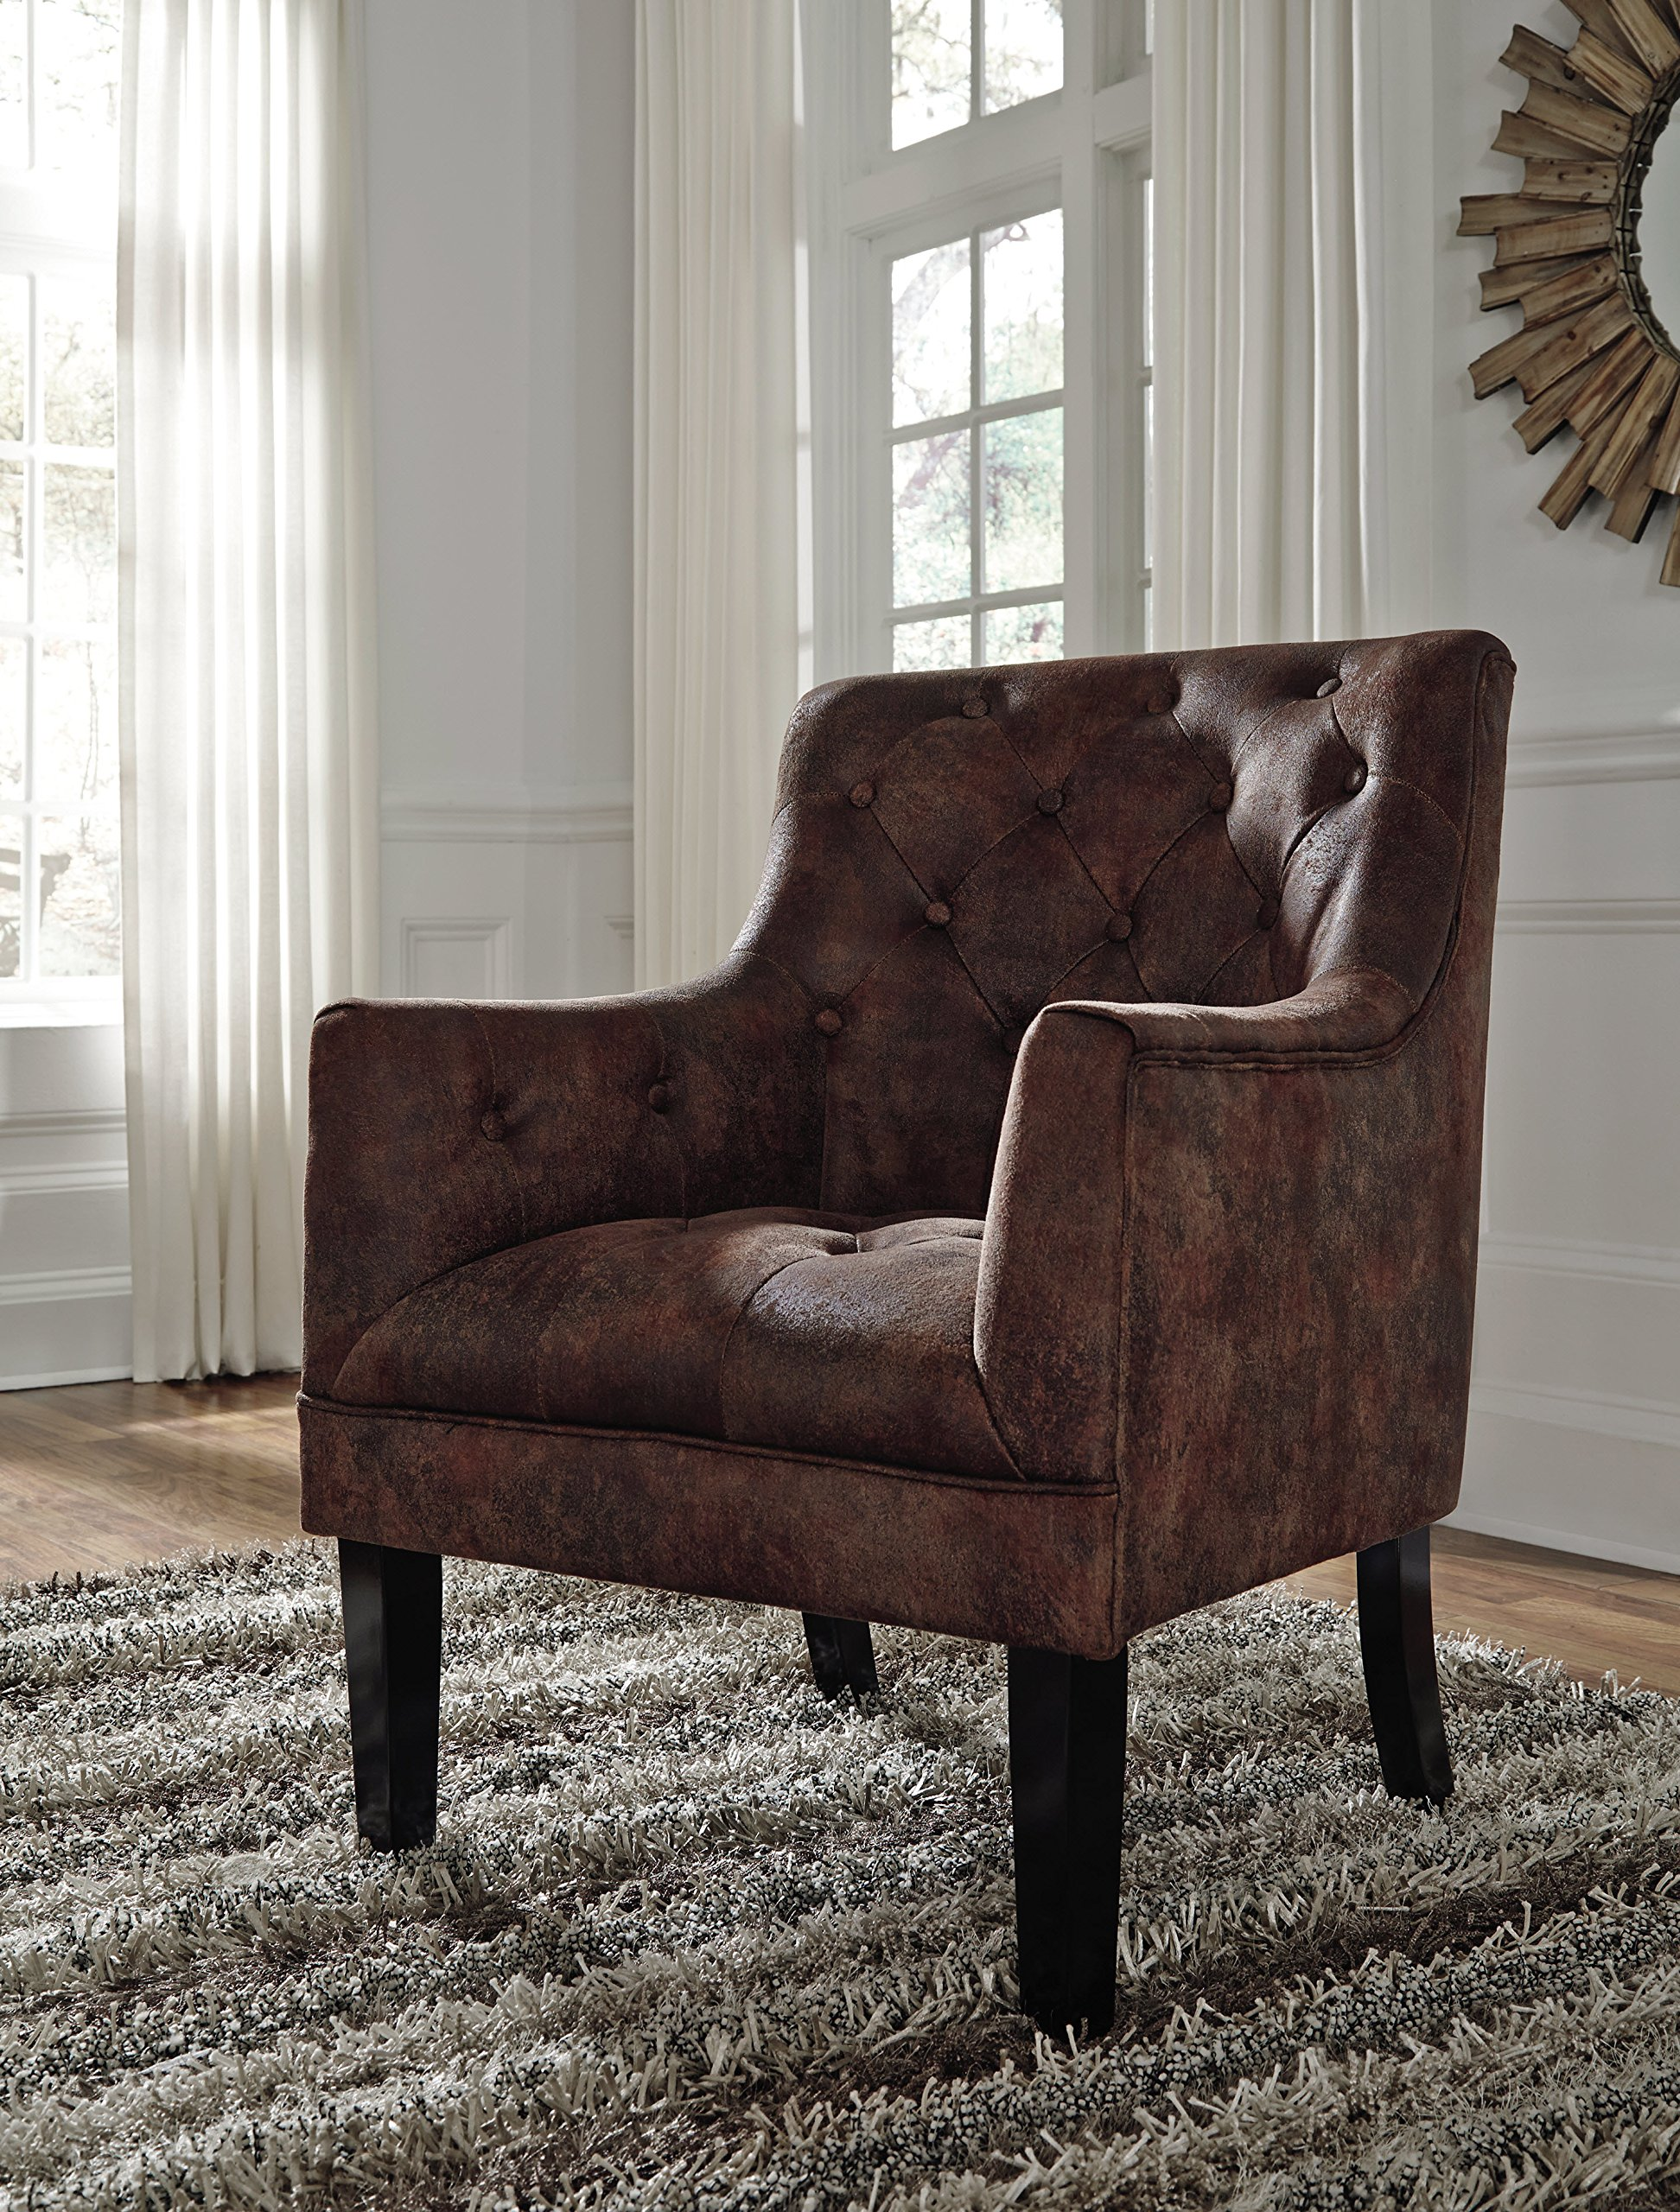 Signature Design by Ashley - Drakelle Accent Chair - Casual - Faux Leather - Brown - Corner-blocked frame Upholstered in a distressed brown faux leather Attached back and seat cushions - living-room-furniture, living-room, accent-chairs - A1EcuV3ENoL -